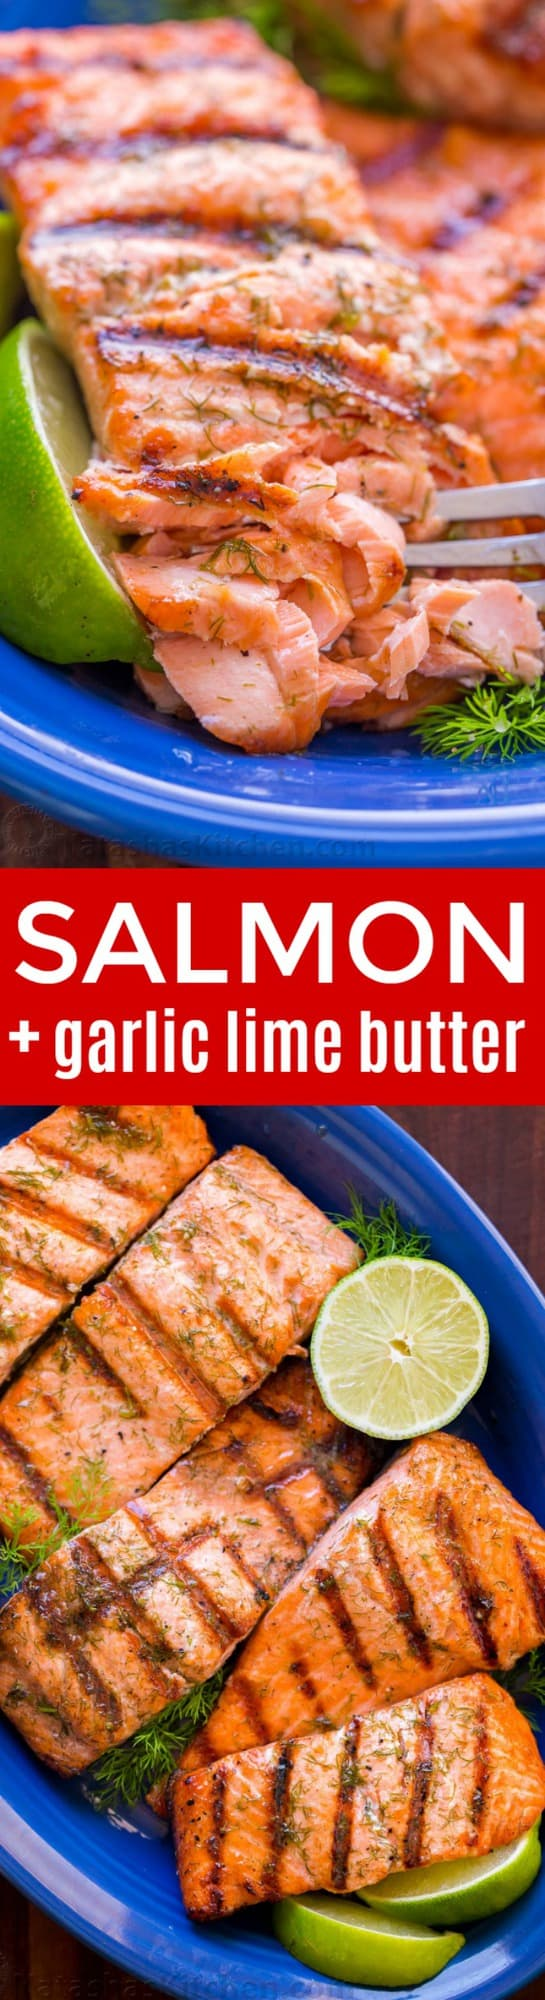 Break Out The Bbq For This Grilled Salmon With Garlic Lime Butter And Eat  Like You